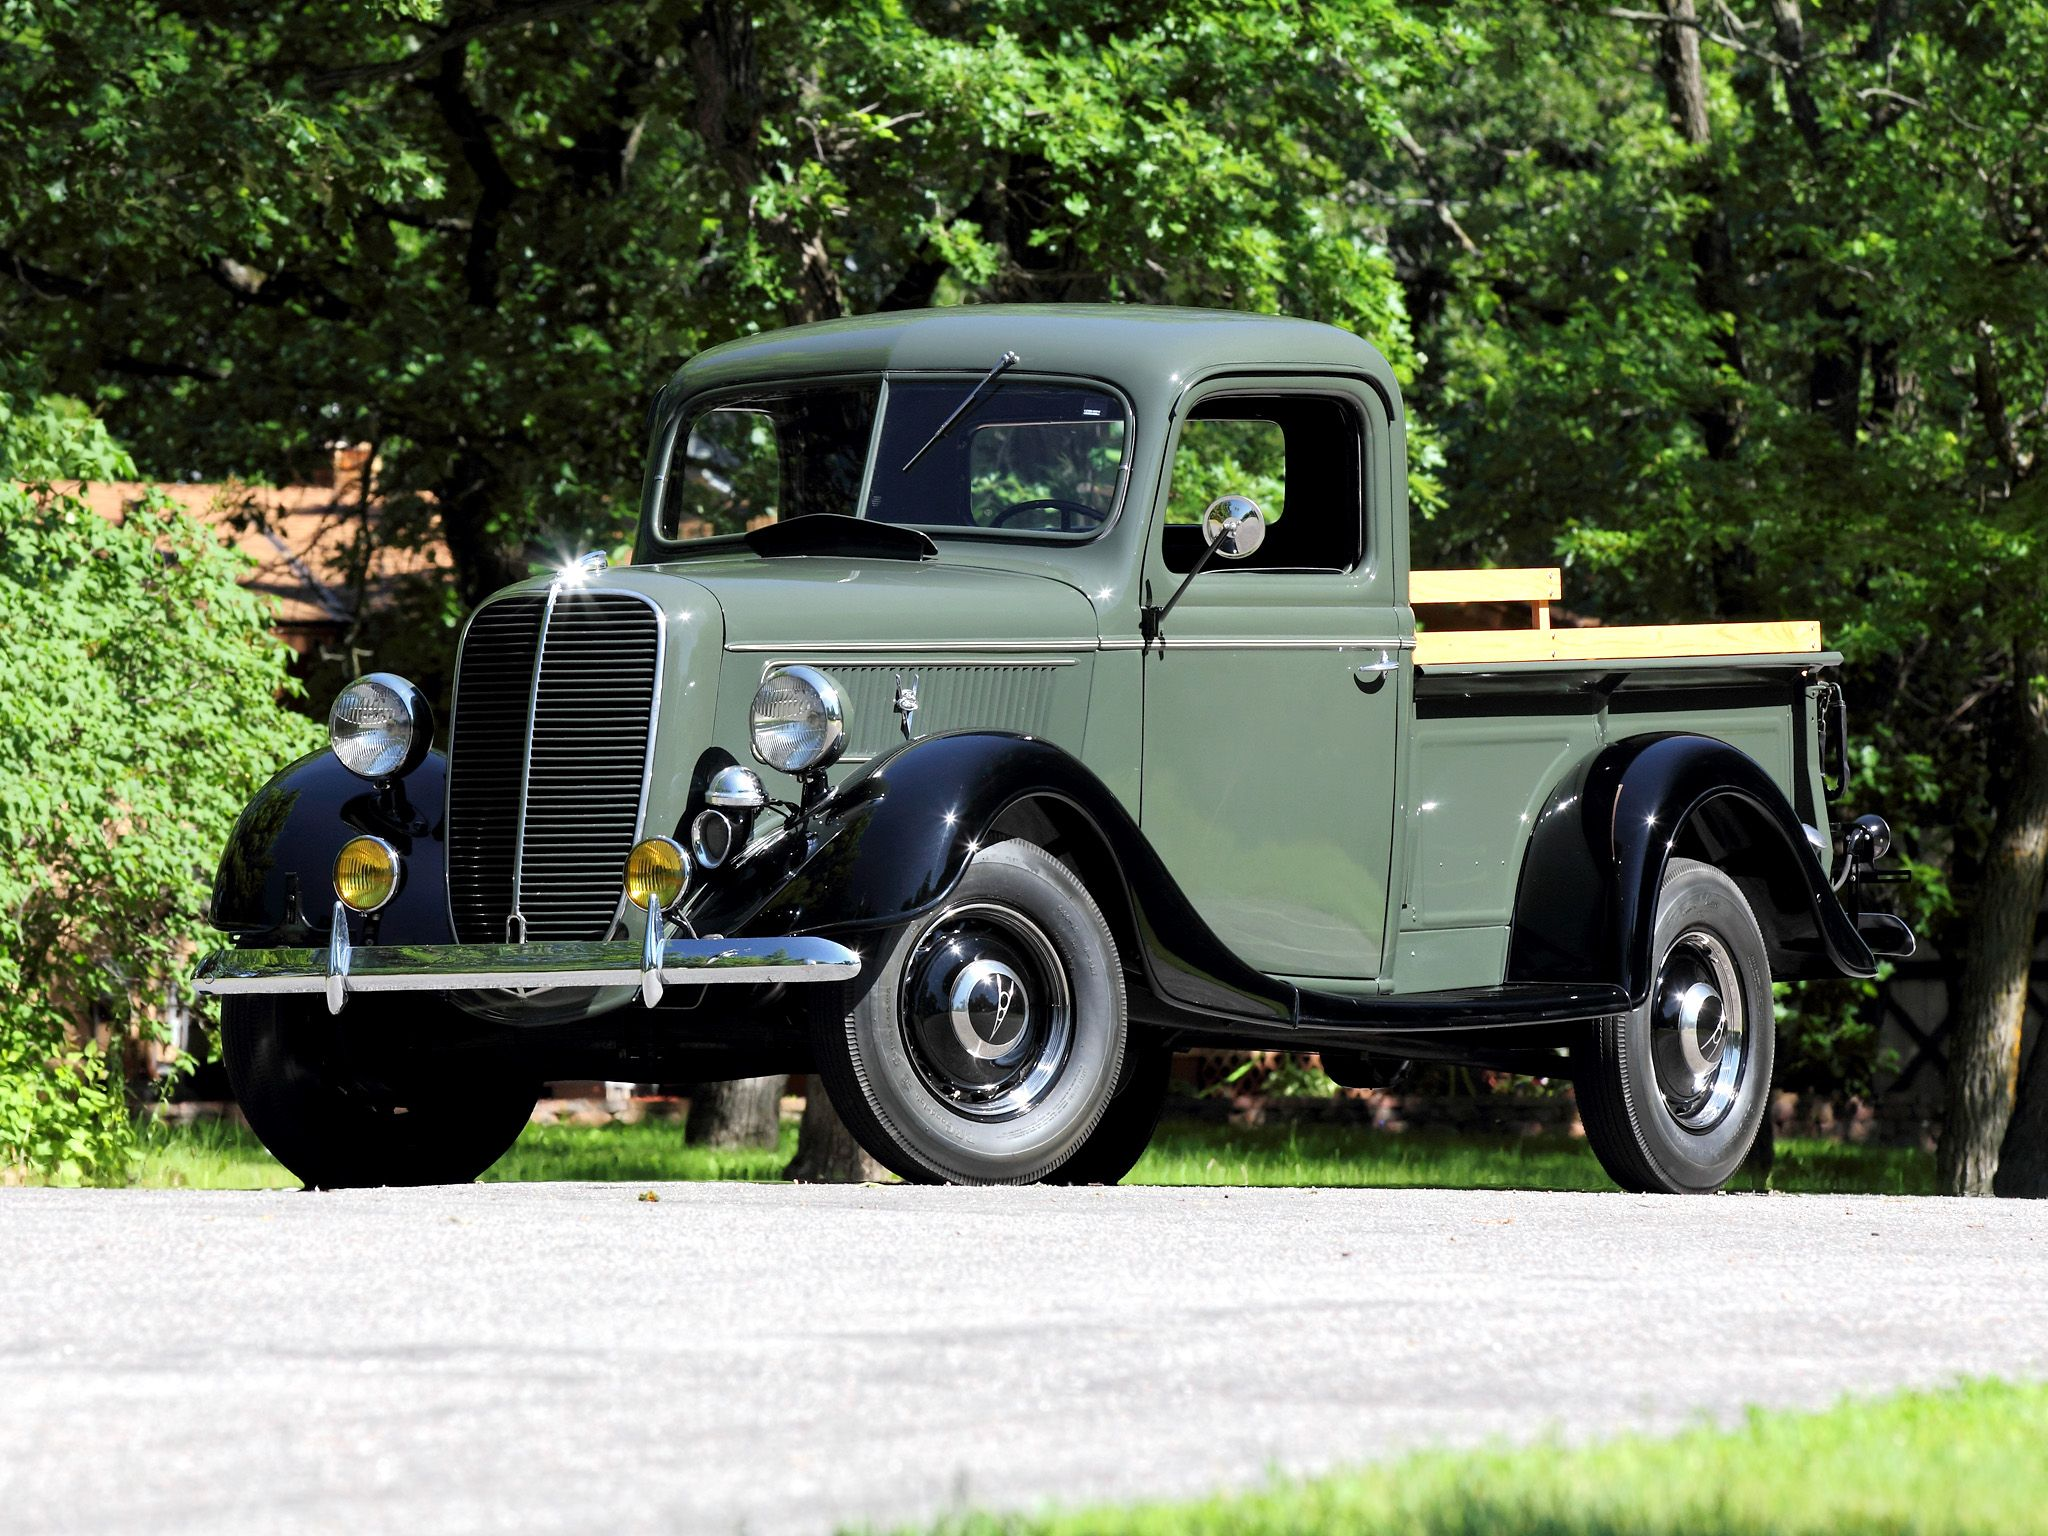 1937 Ford V8 Deluxe Pickup Maintenance/restoration of old/vintage ...